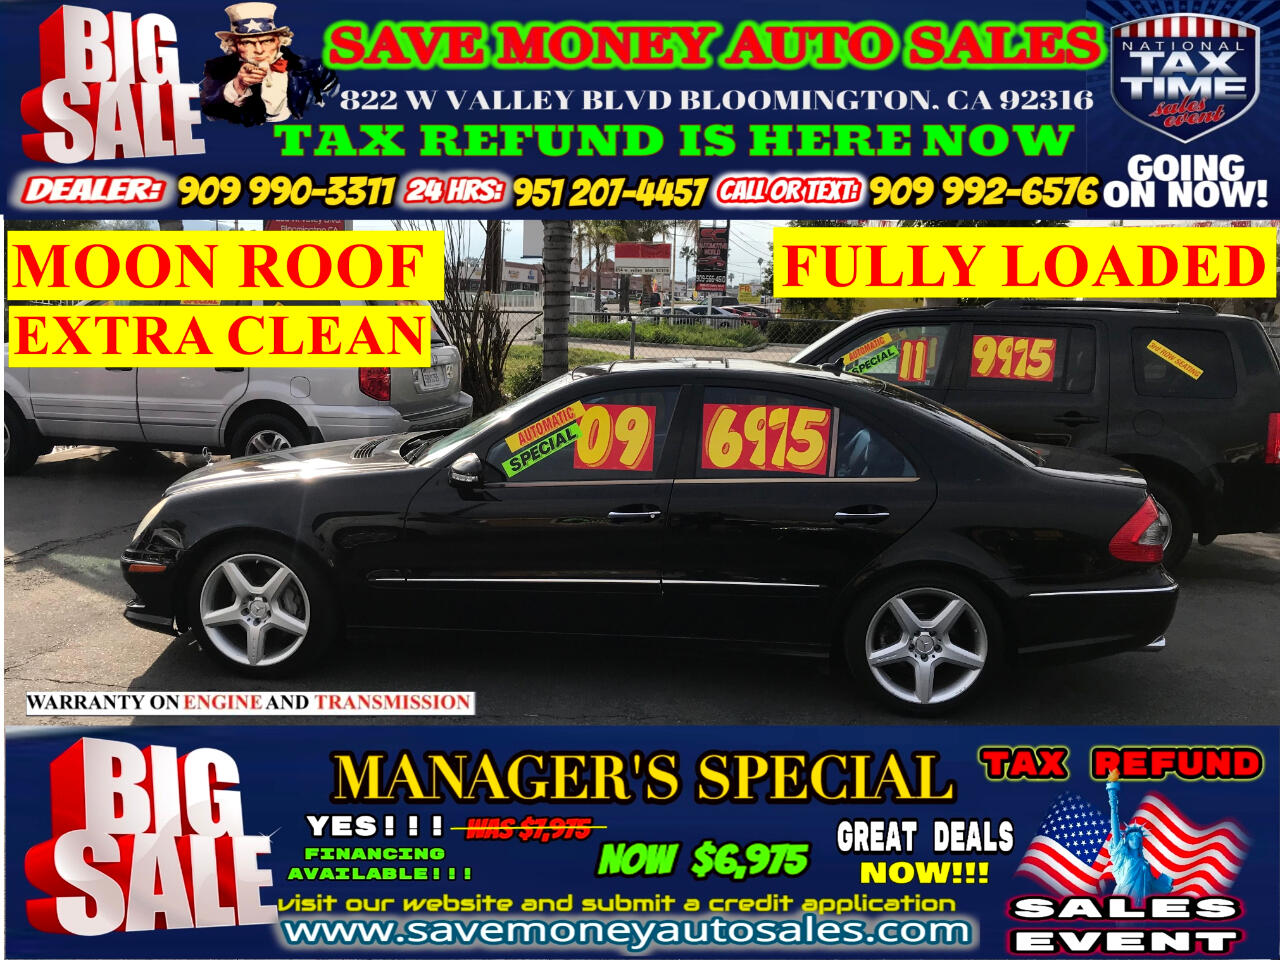 2009 Mercedes-Benz E-Class E350 LUXURY> FULLY LOADED> EXTRA CLEAN> MOON ROOF